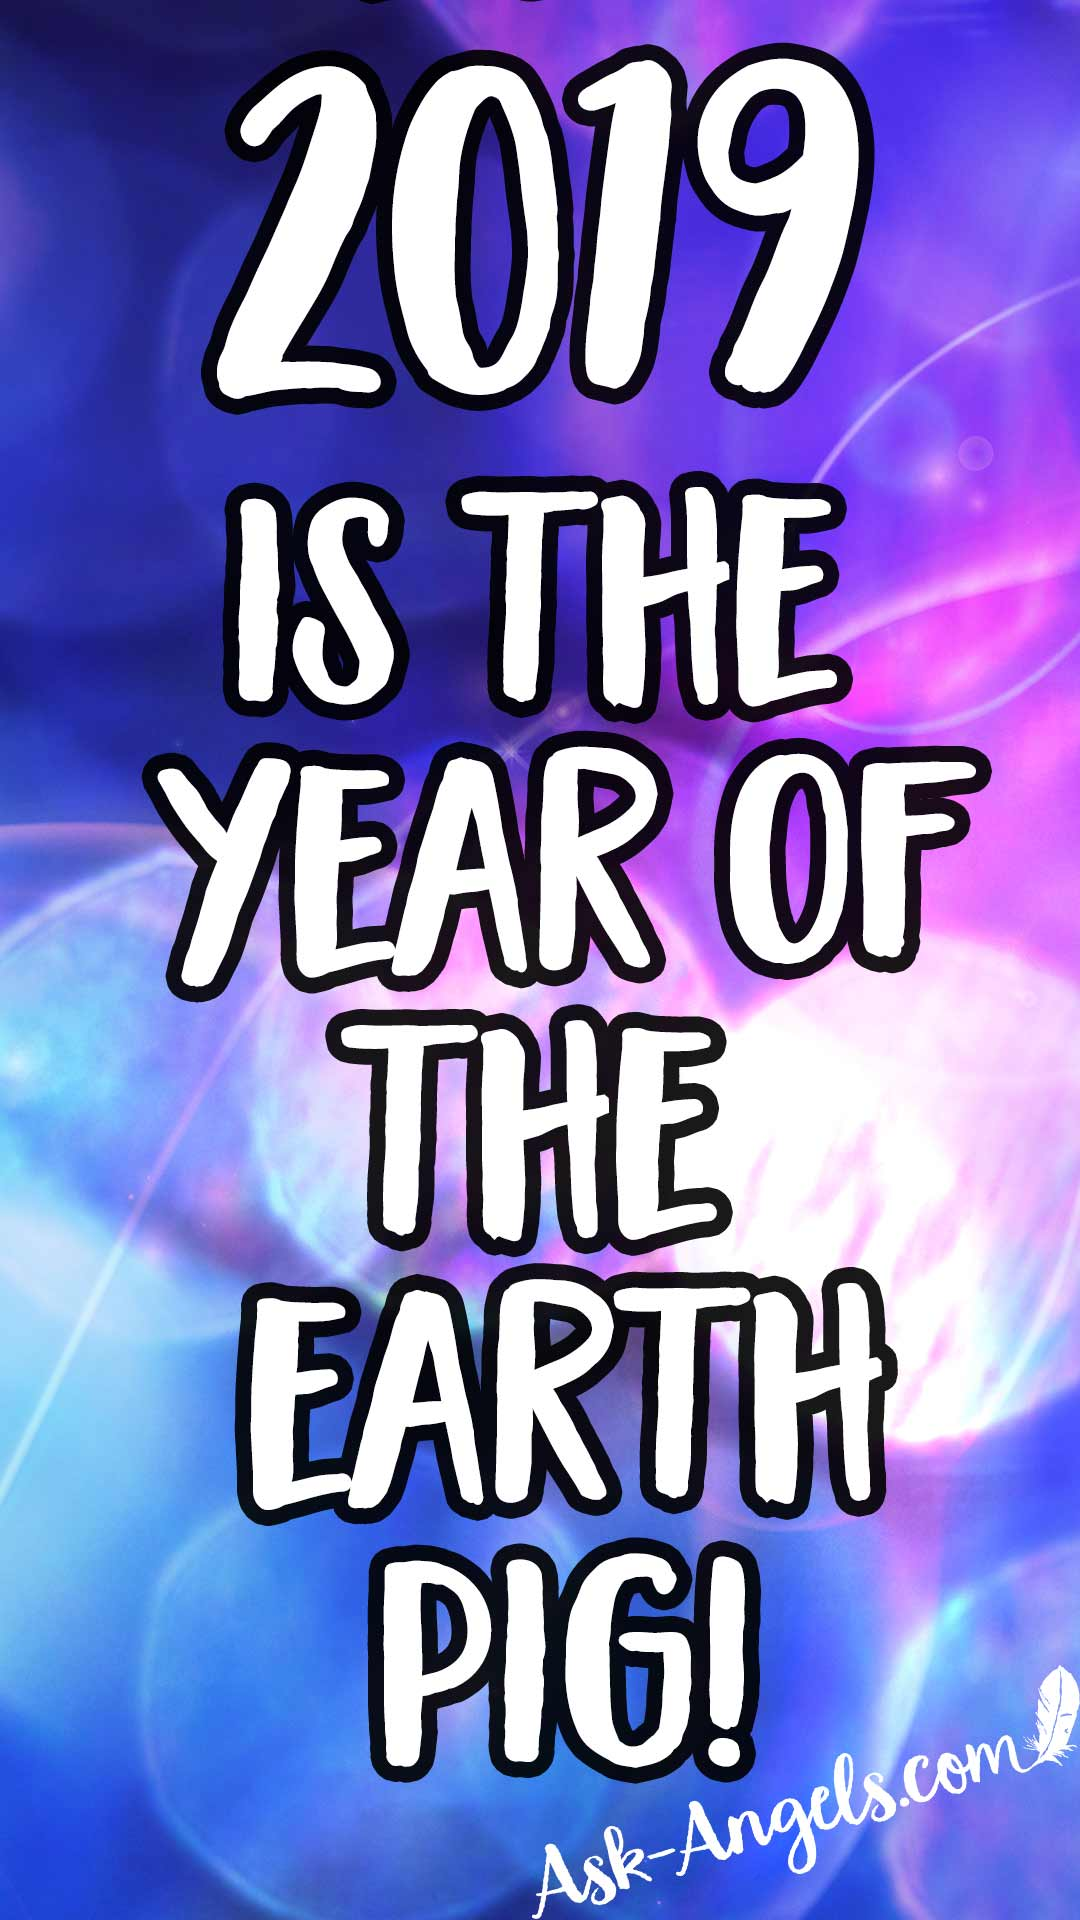 2019 Is the Year of the Earth Pig